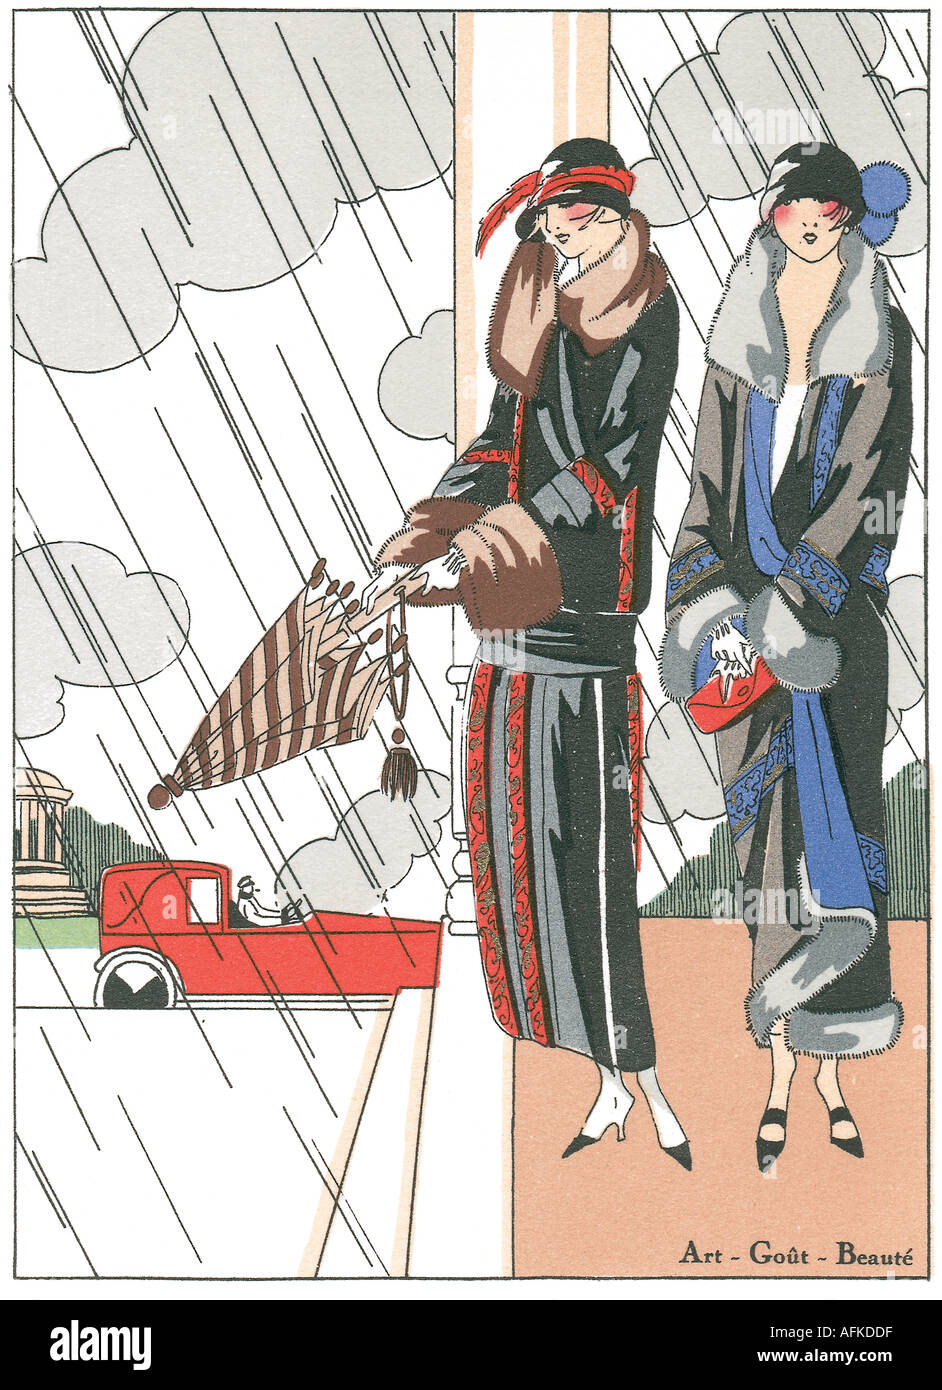 Fashion plate from Art Gout Beauté showing day wear 1920s rain car outside - Stock Image